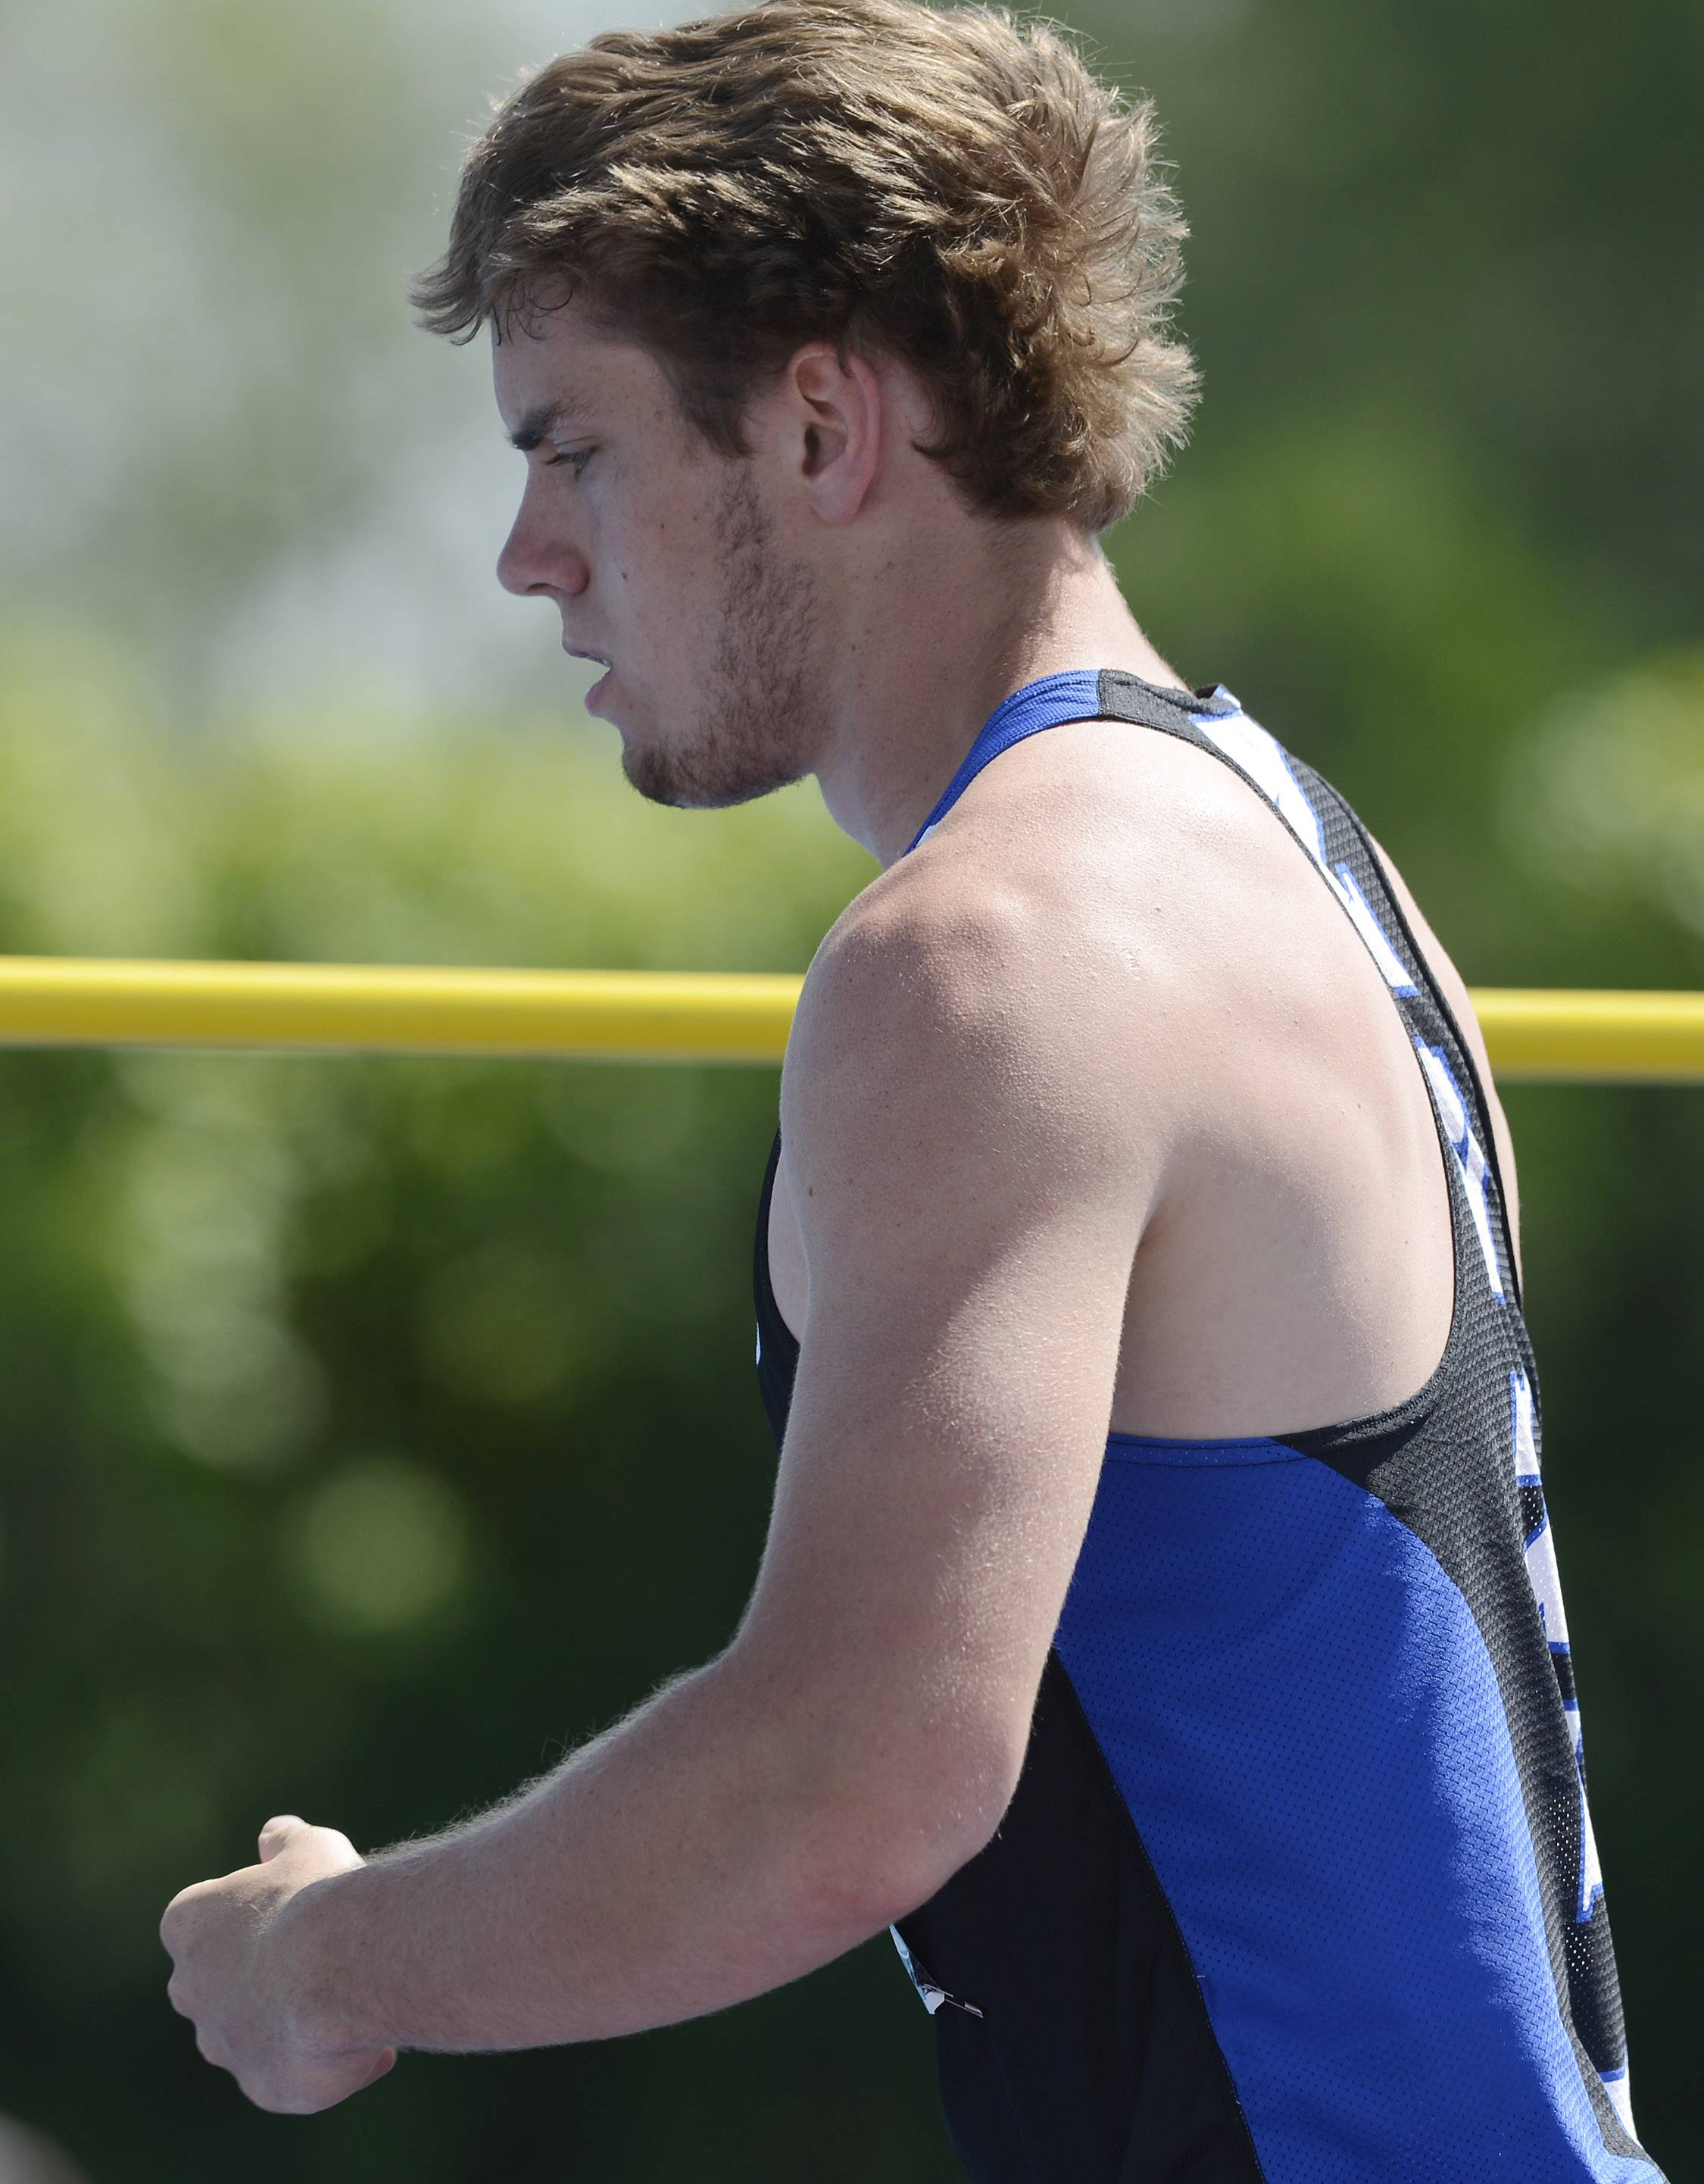 Joe Lewnard/jlewnard@dailyherald.comSt. Charles North's Erik Miller pumps his fist as he becomes one of two competitors left in the high jump during the boys class 3A state track and field finals in Charleston Saturday. The event was won by Grant's Jonathan Wells.